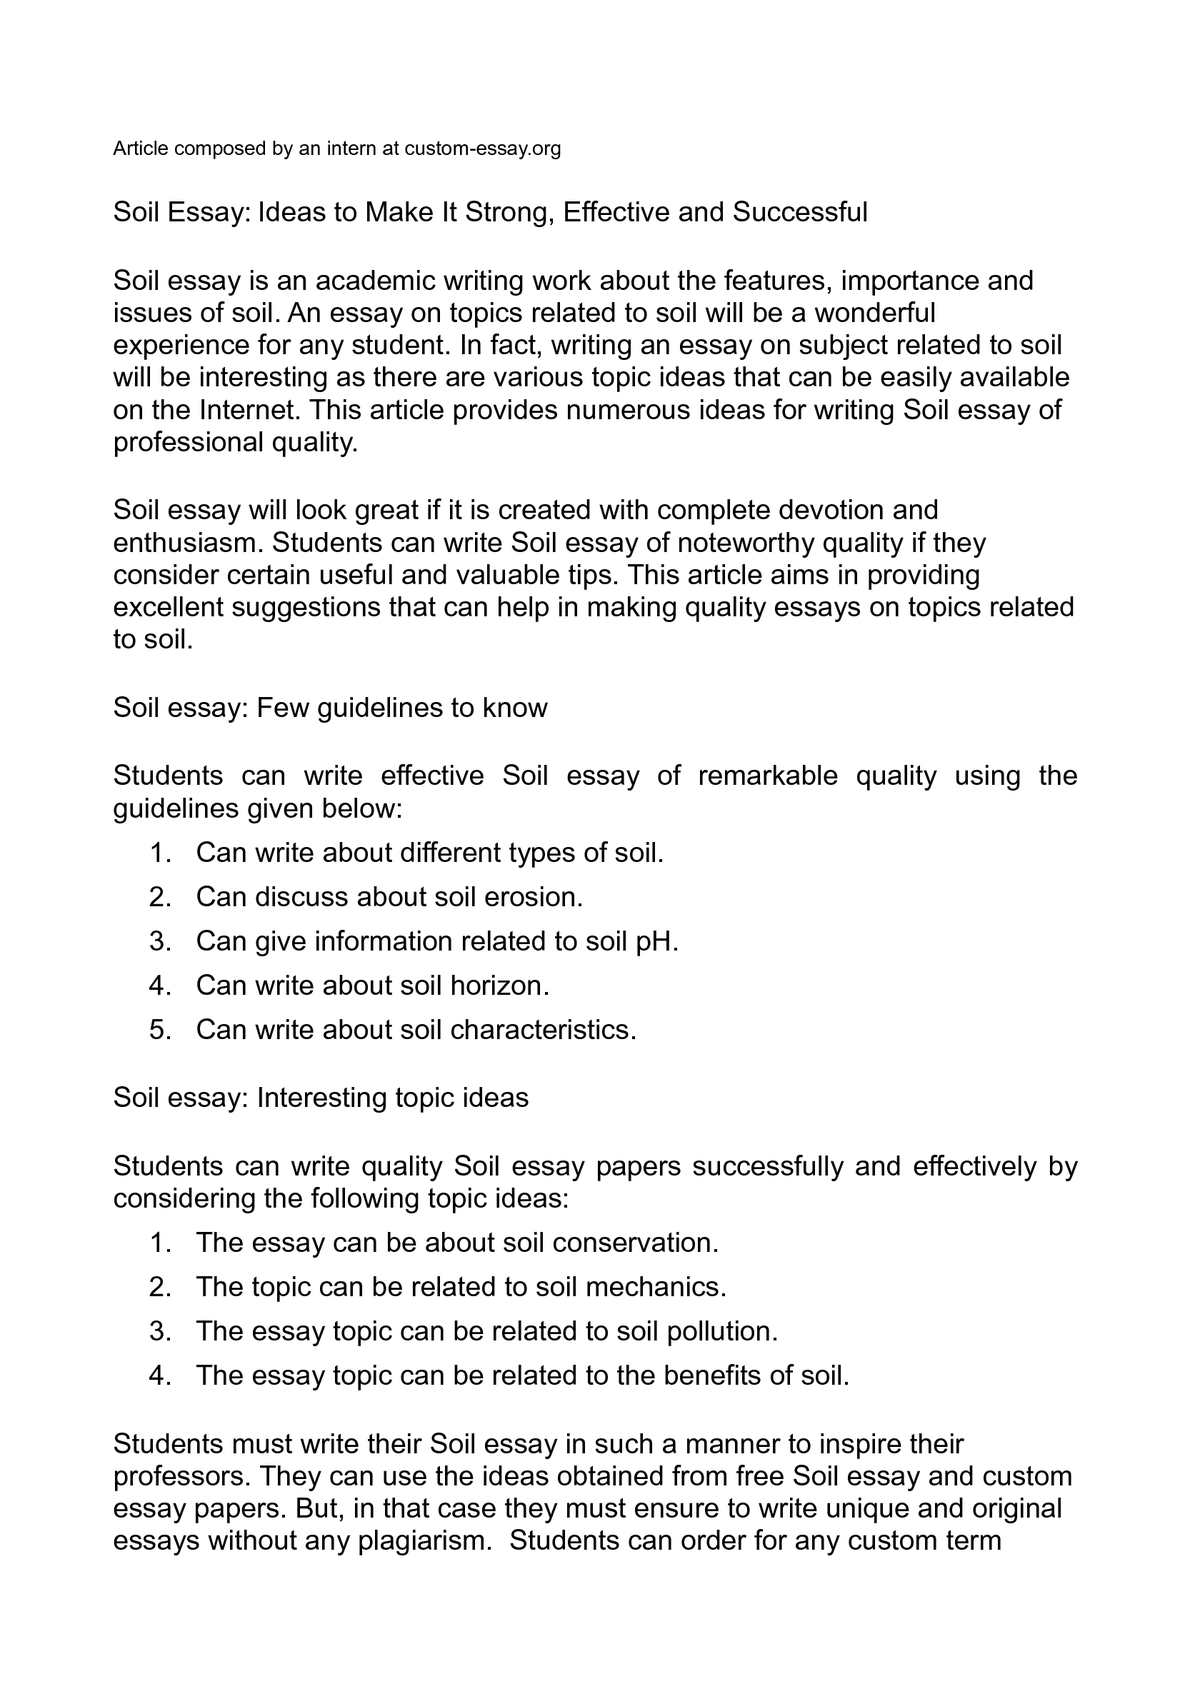 Thesis Statement For Education Essay  Healthy Diet Essay also Business Management Essays Calamo  Soil Essay Ideas To Make It Strong Effective And Successful Essay On Modern Science